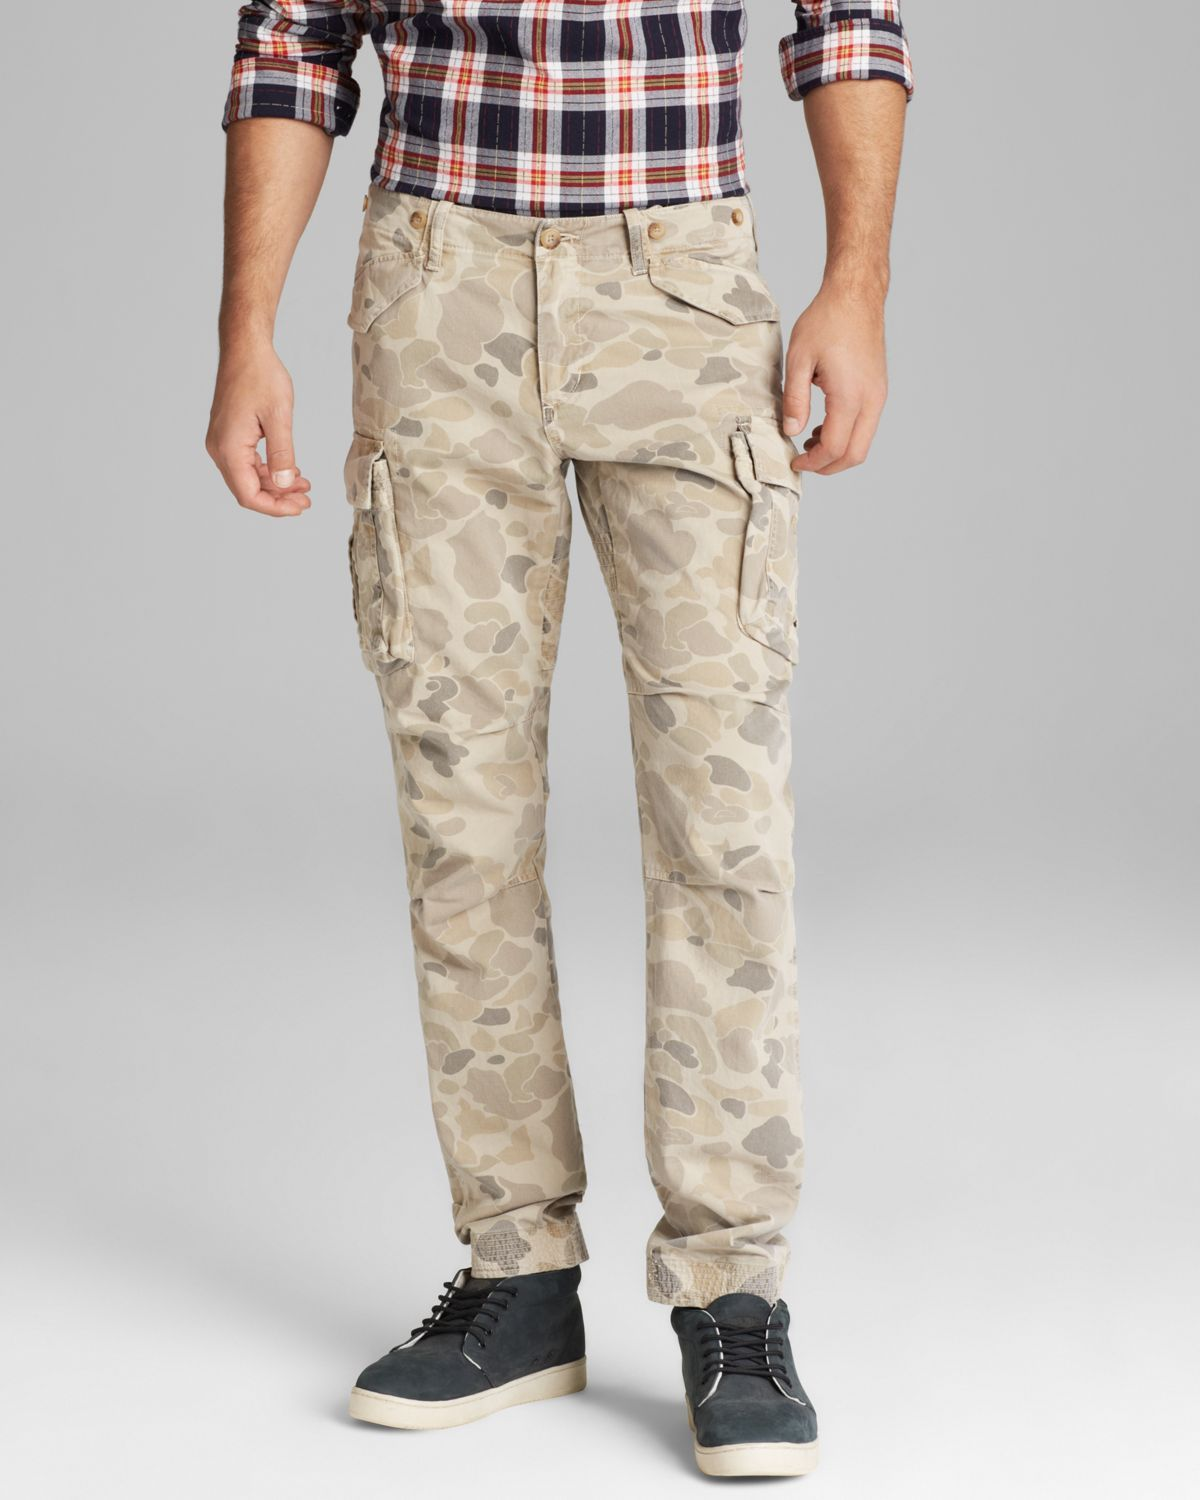 Men's Natural Perfect Camo Cargo Pants - Slim Fit | Clothing ...